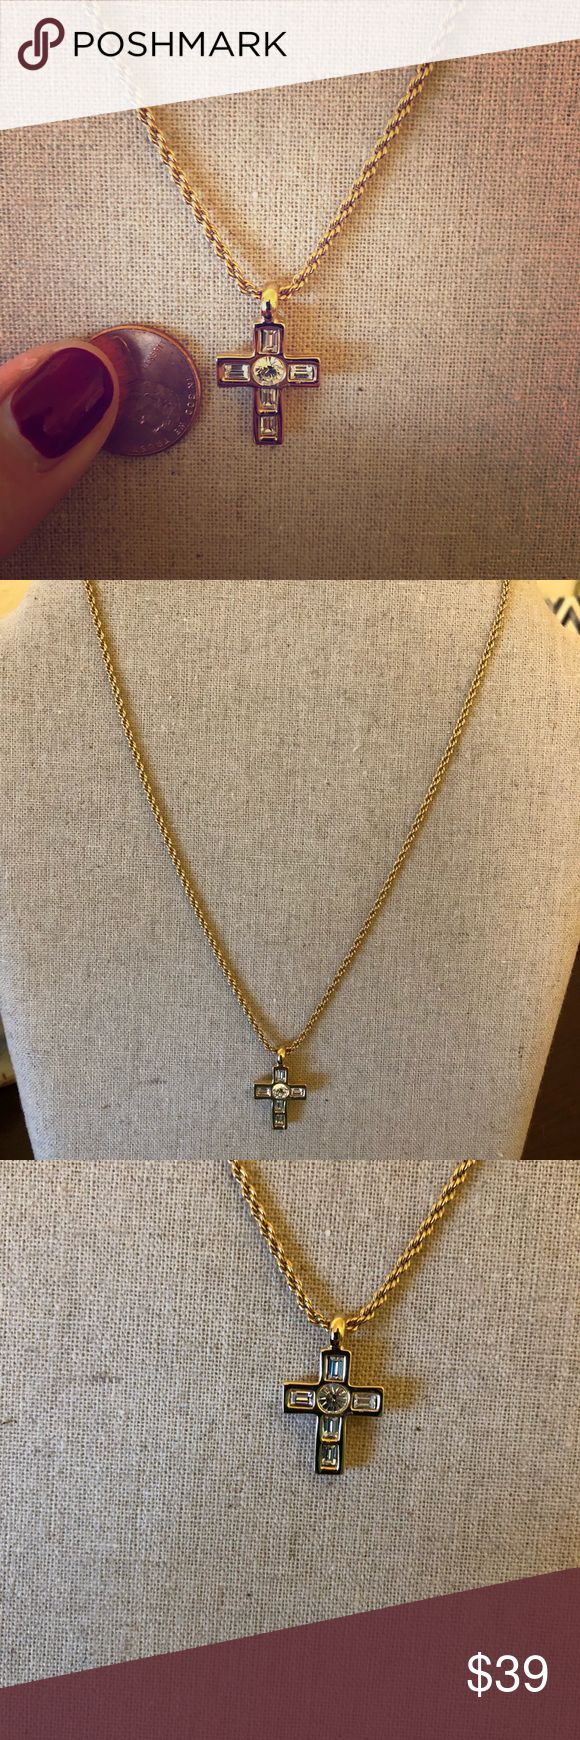 "Swarovski Gold Cross Worn only once, gorgeous sparkly Swarovski Cross with gold rope chain. Seems to be 16"". Just beautiful. Smoke and pet free home, enjoy! EUC Swarovski Jewelry Necklaces"